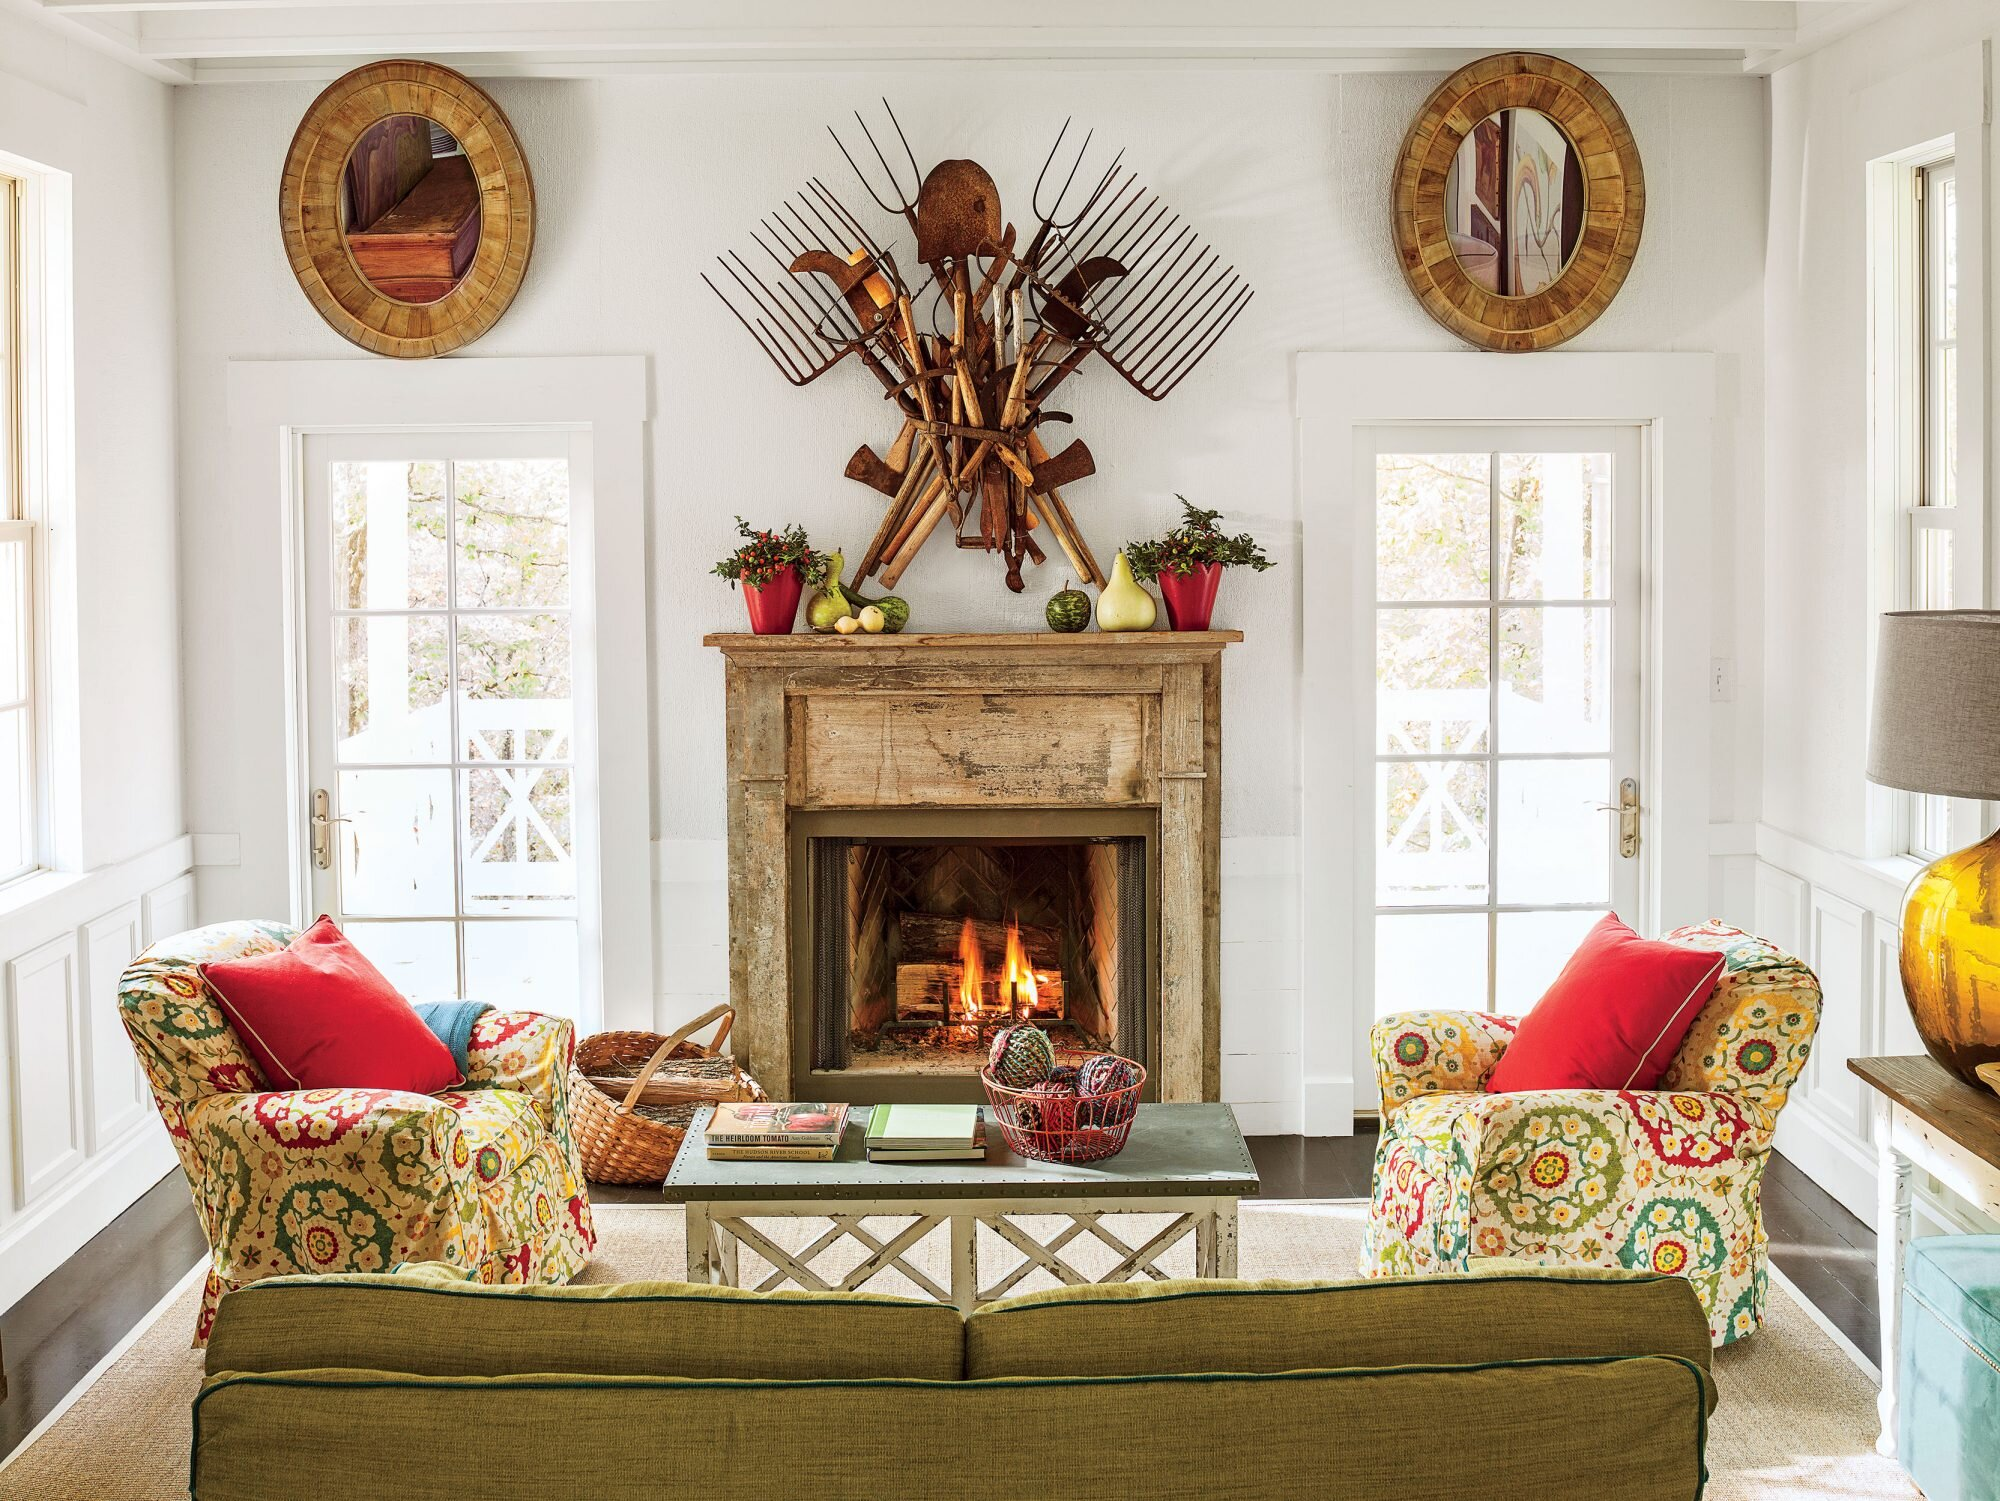 Our Best Living Room Wall Decor Ideas